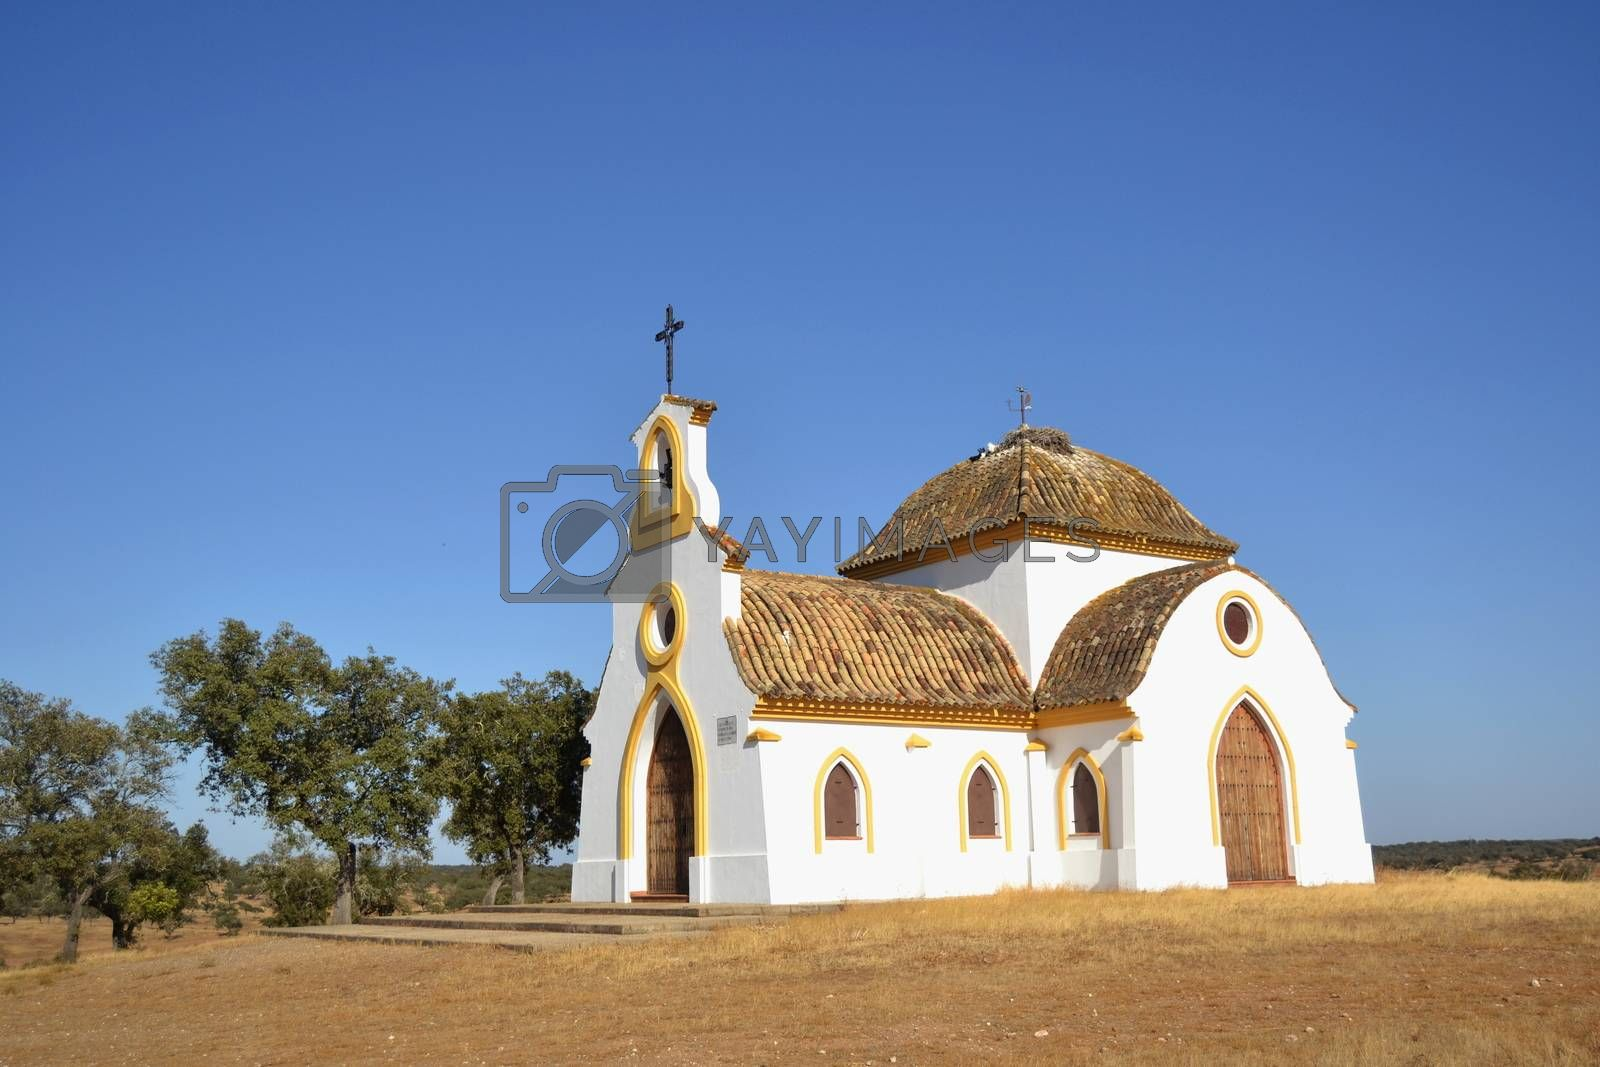 Small hermitage in the countryside to celebrate pilgrimages in spring